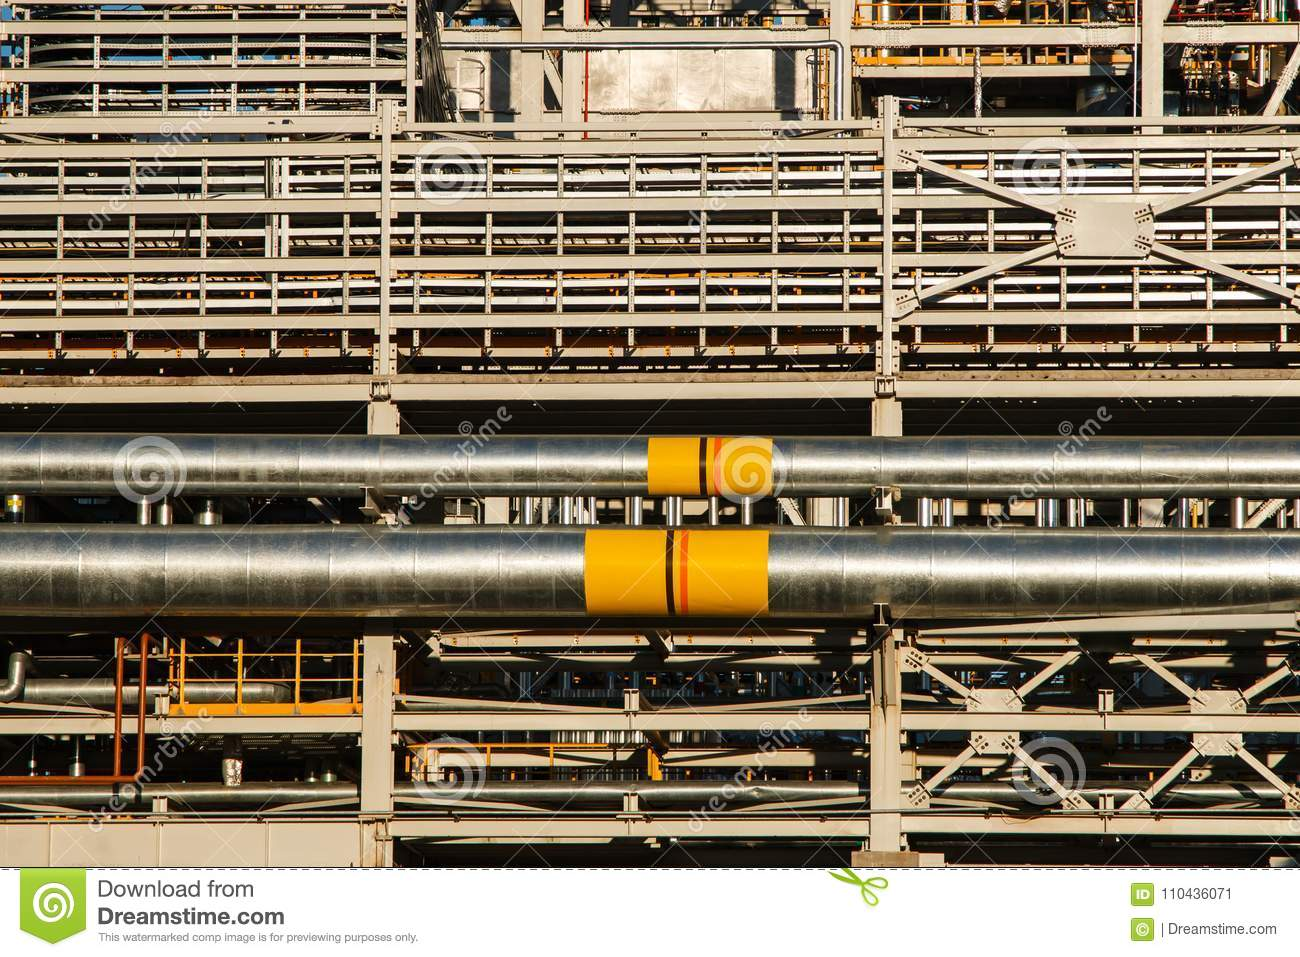 Pipelines of Refinery factory and insulation at industrial zone.